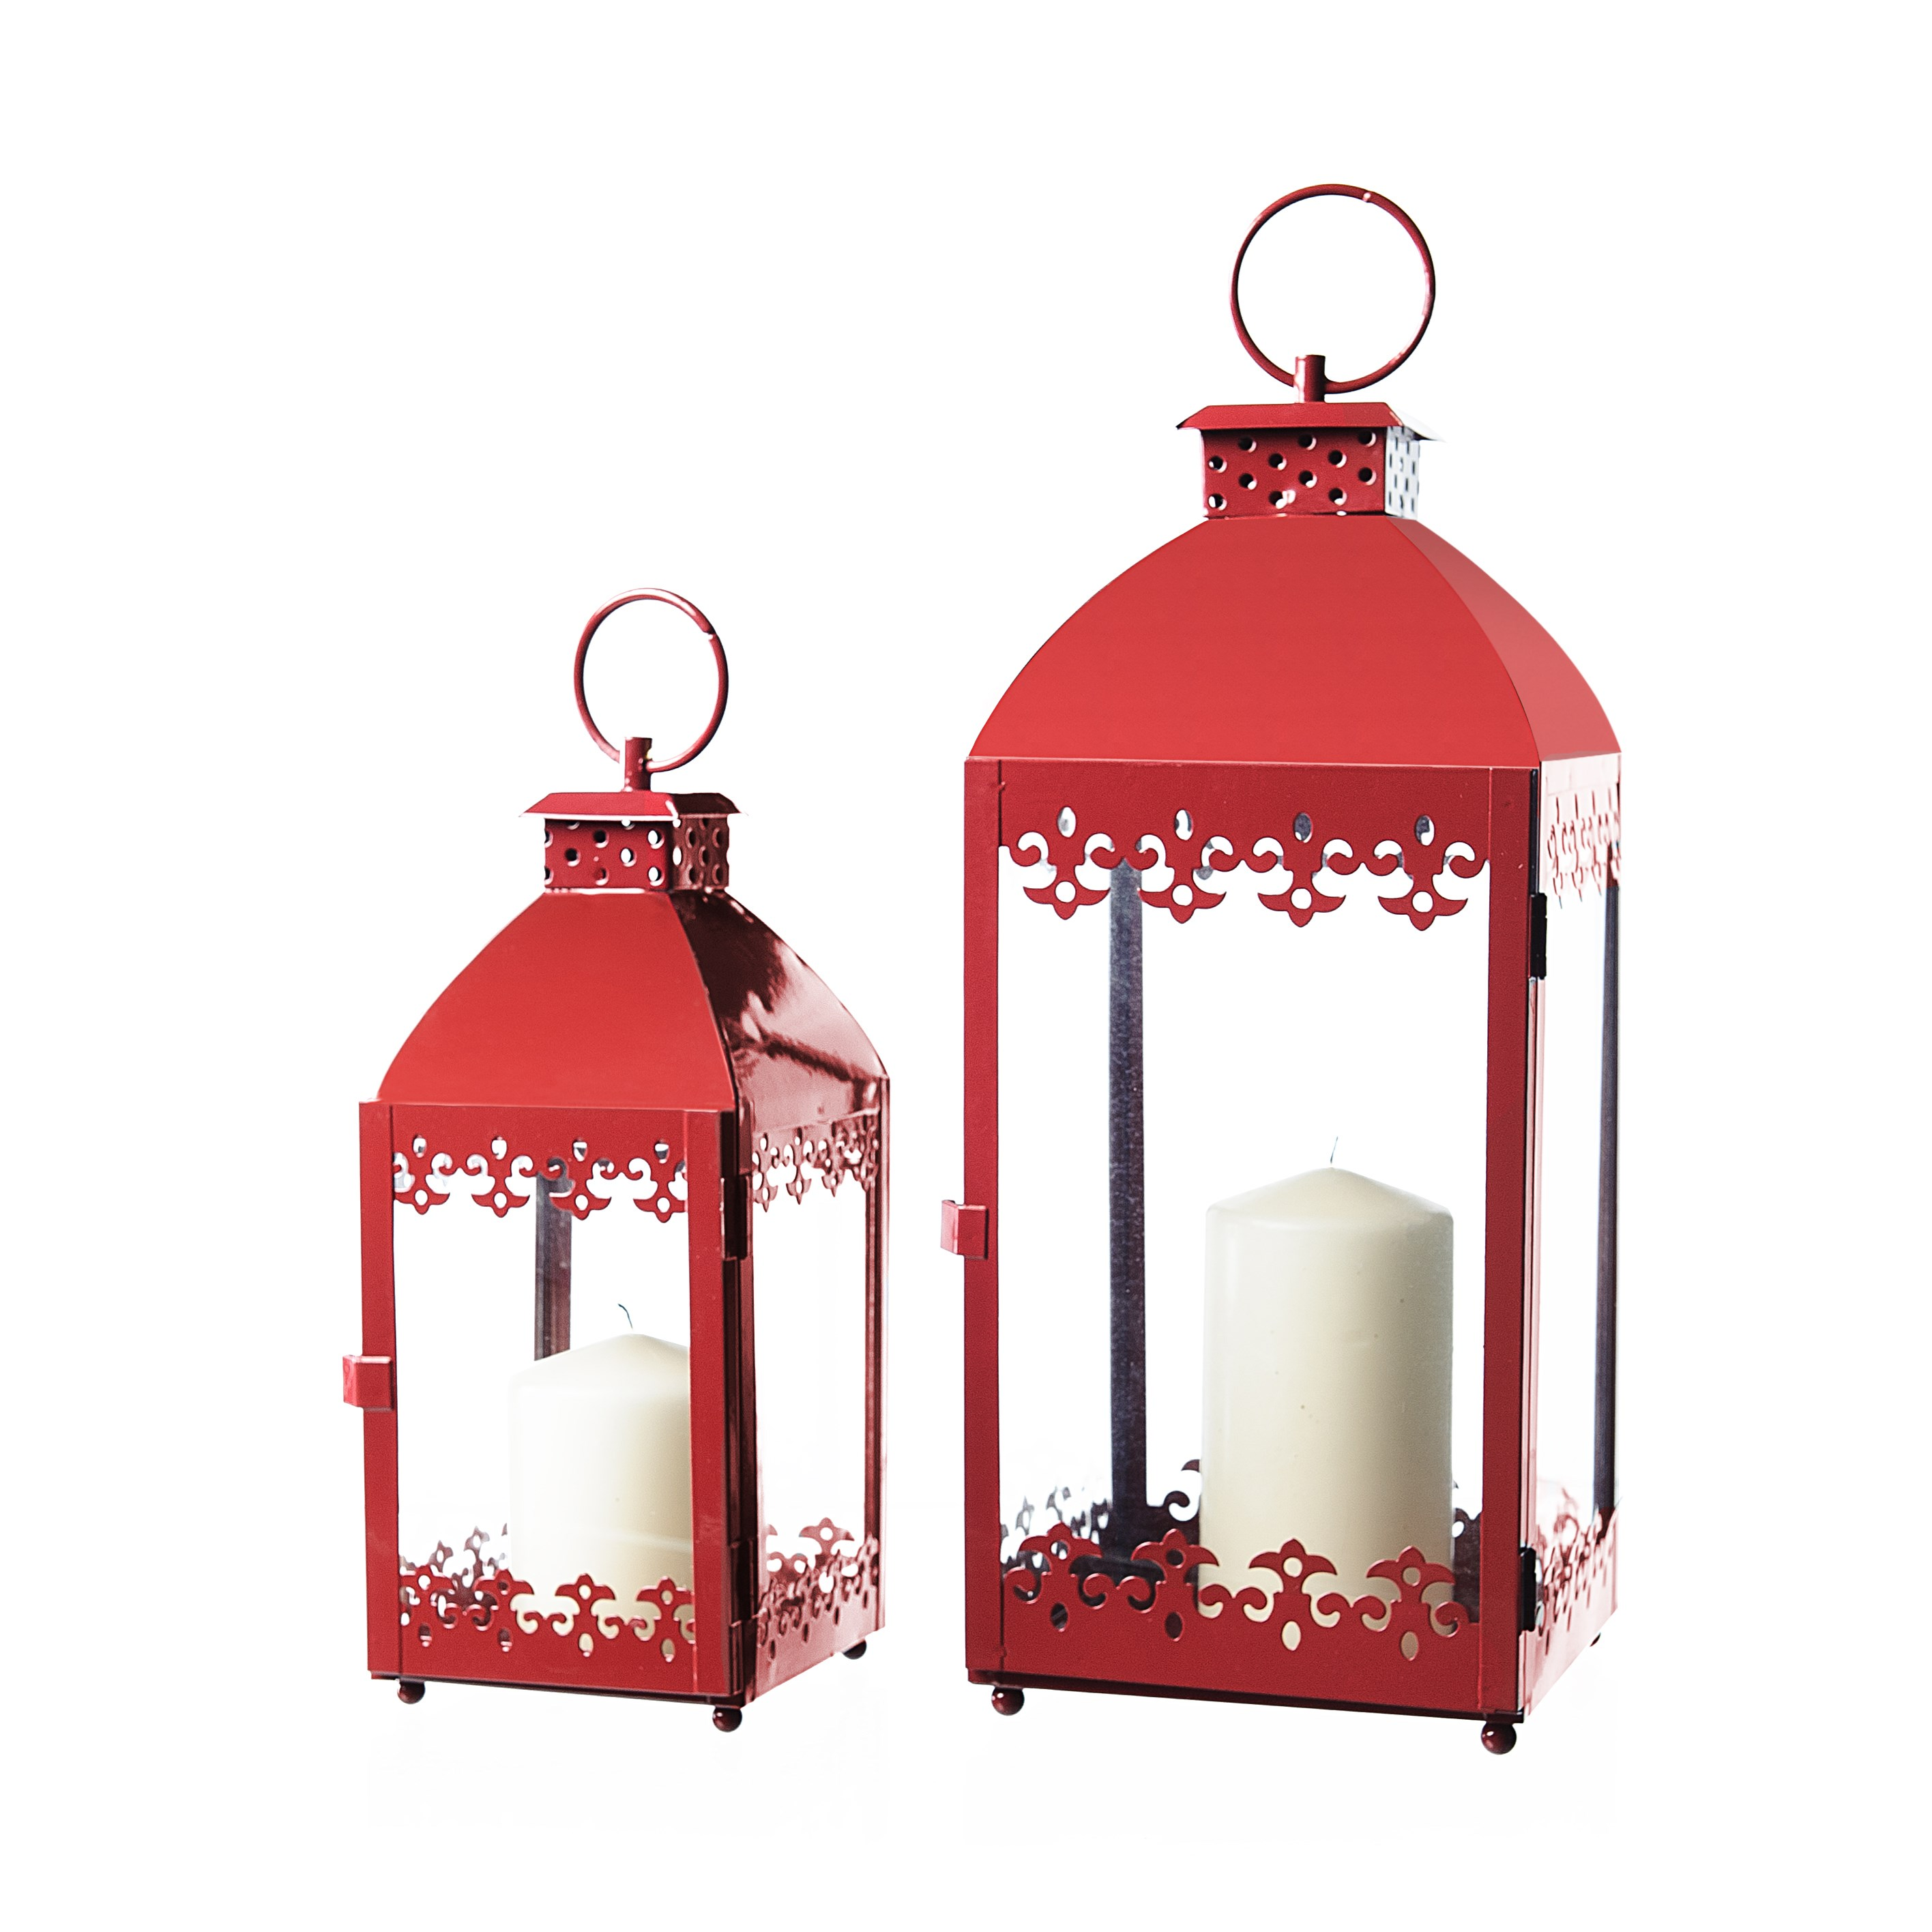 Allison Garden Land  Set of 2 Metal Lanterns - Red